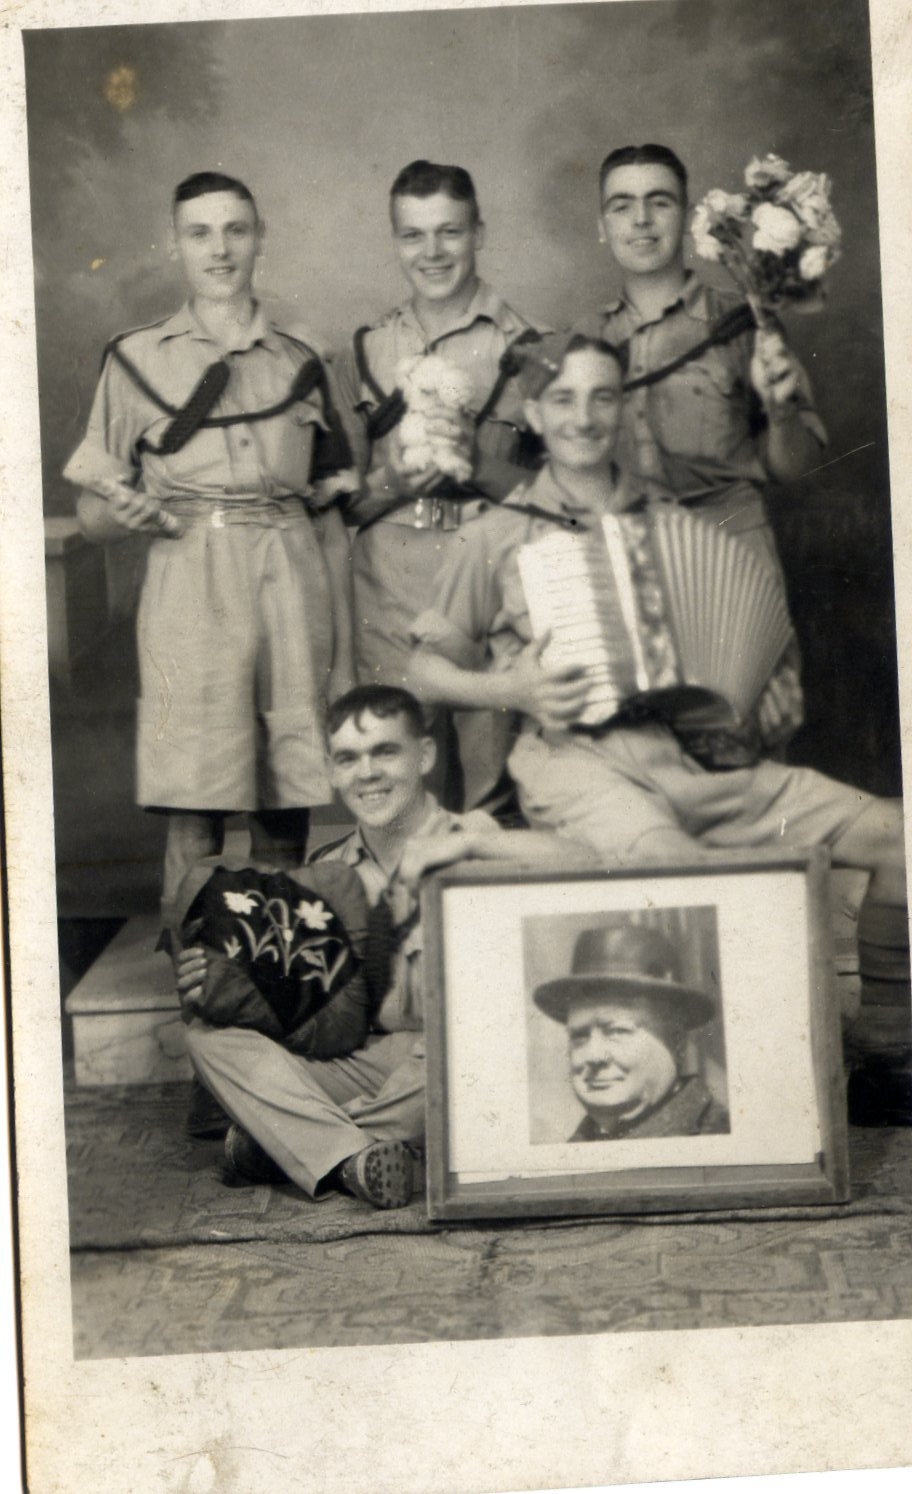 The early version of the second world war photo, before cleaning etc